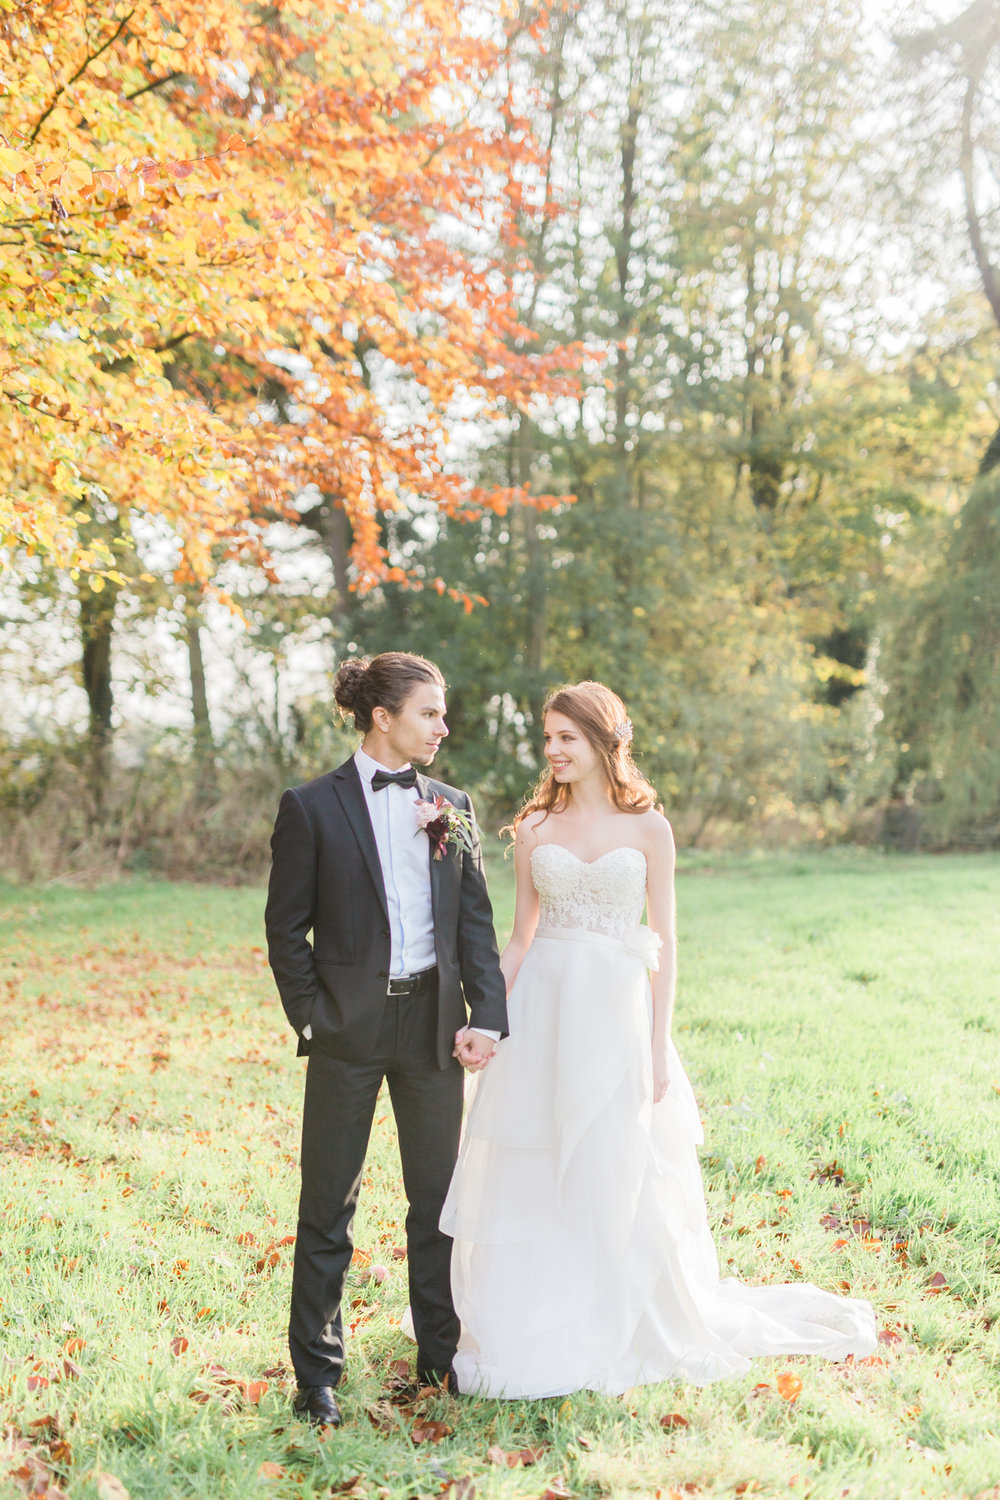 Suzanne_Li_photography_2016_DESTINATIONS_AND_WEDDINGS-114.jpg